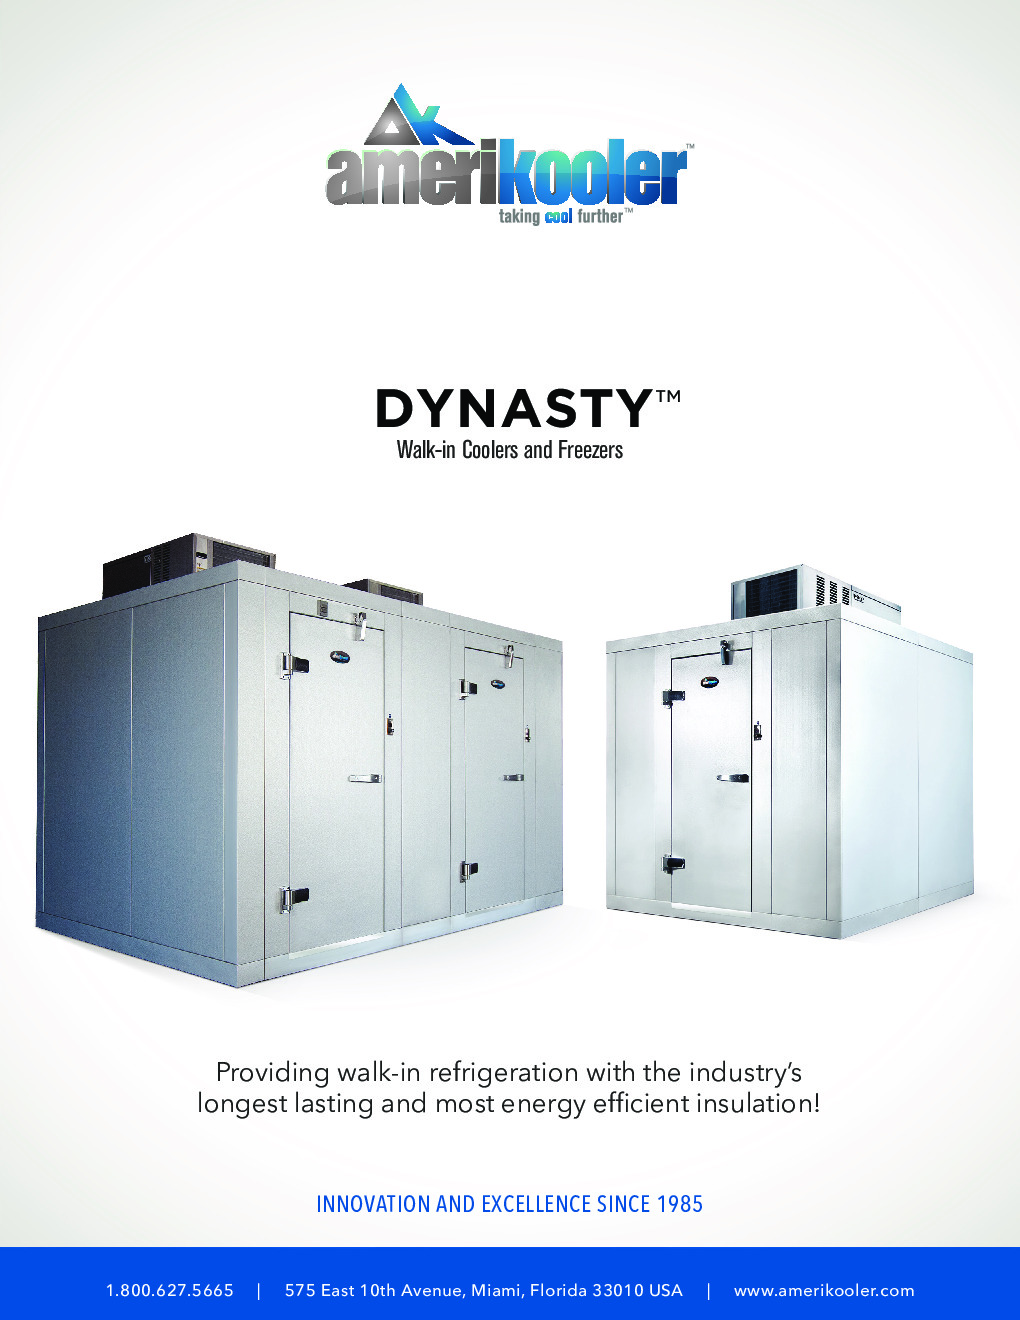 AmeriKooler DW091077F-5/5-RM 9' X 10' Walk-In Cooler, 5' L Cooler with Floor and 5' L Freezer, Remote